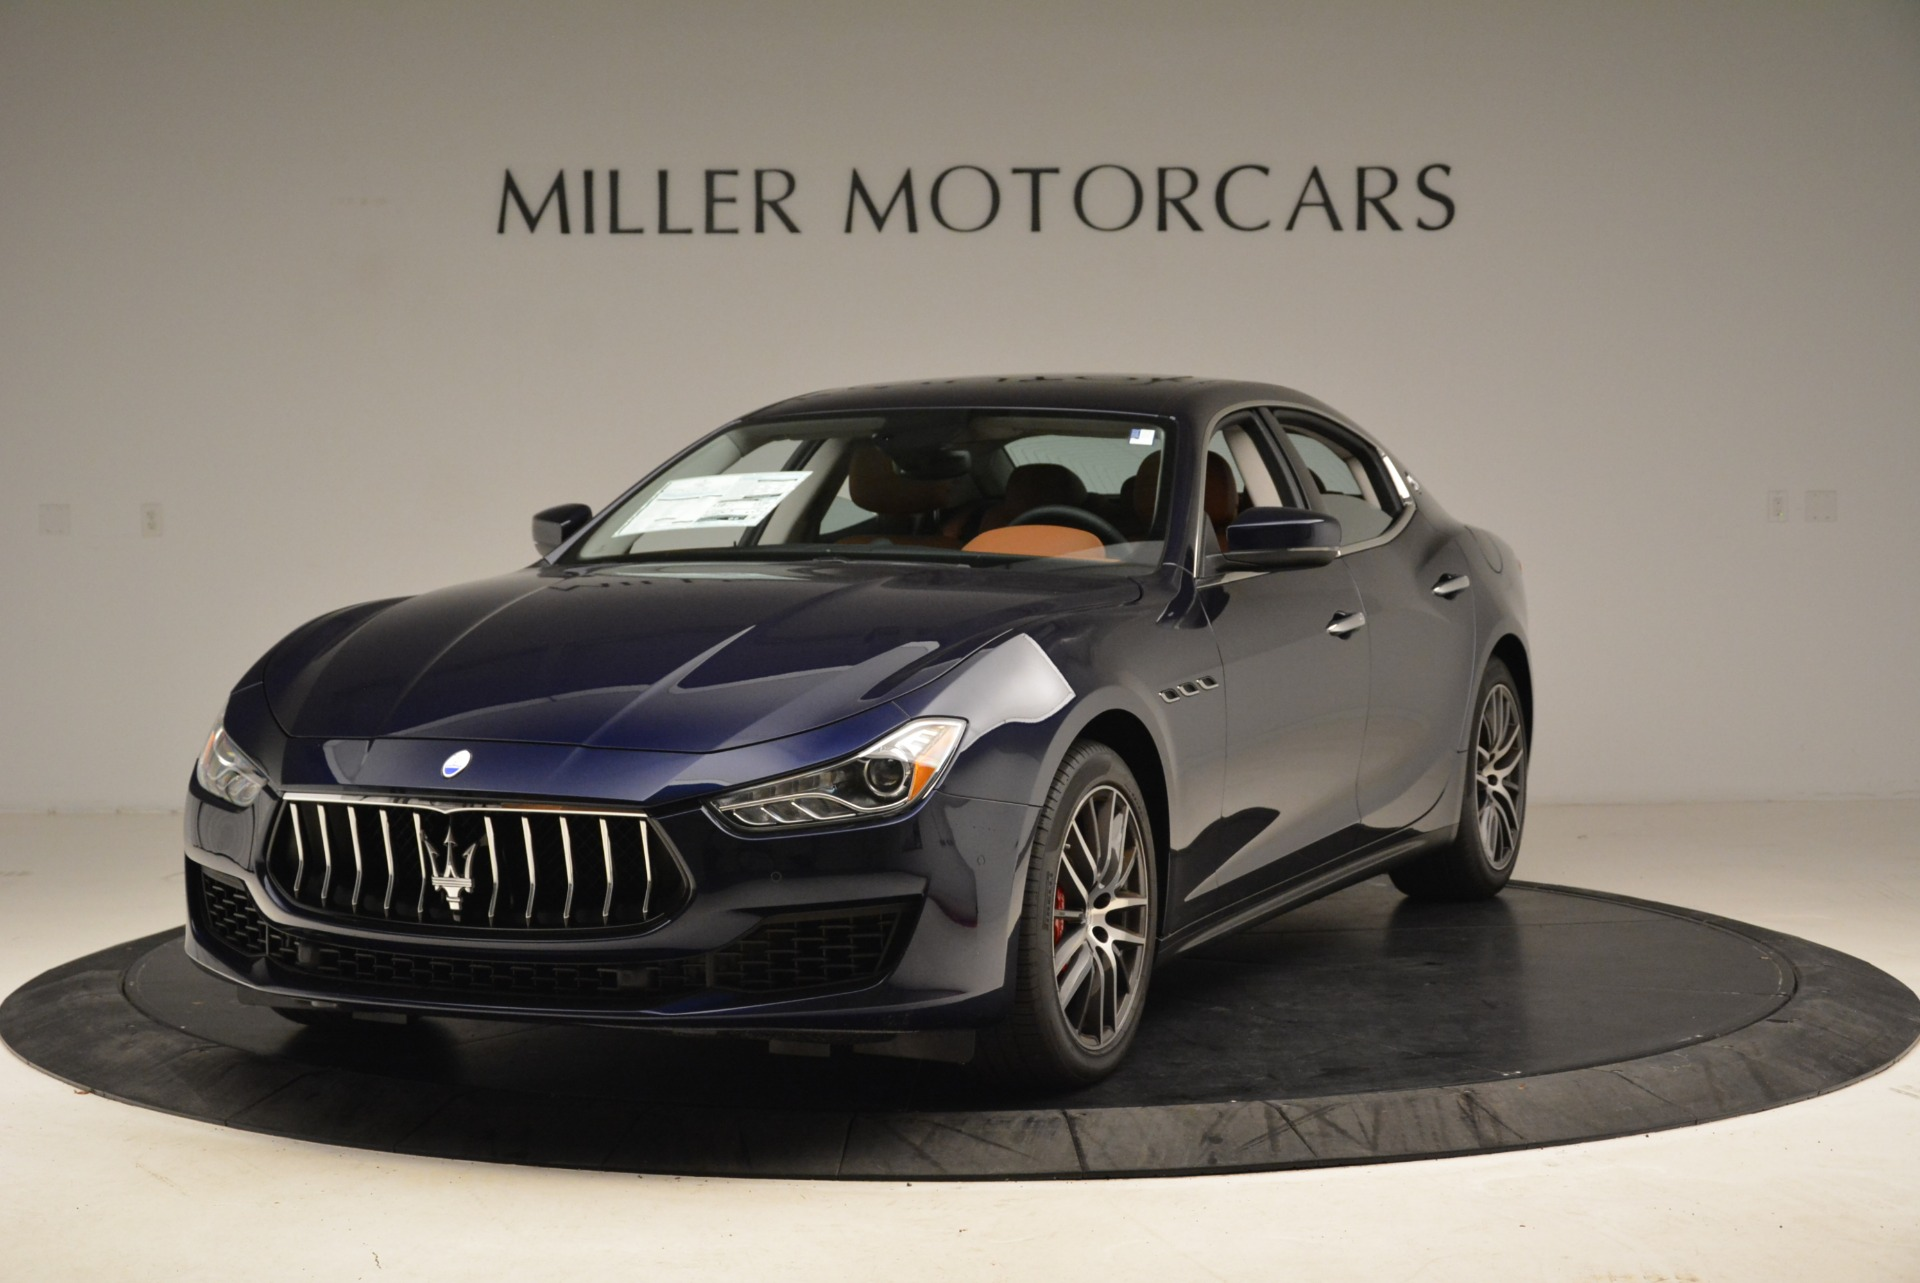 Used 2019 Maserati Ghibli S Q4 for sale Sold at Alfa Romeo of Greenwich in Greenwich CT 06830 1